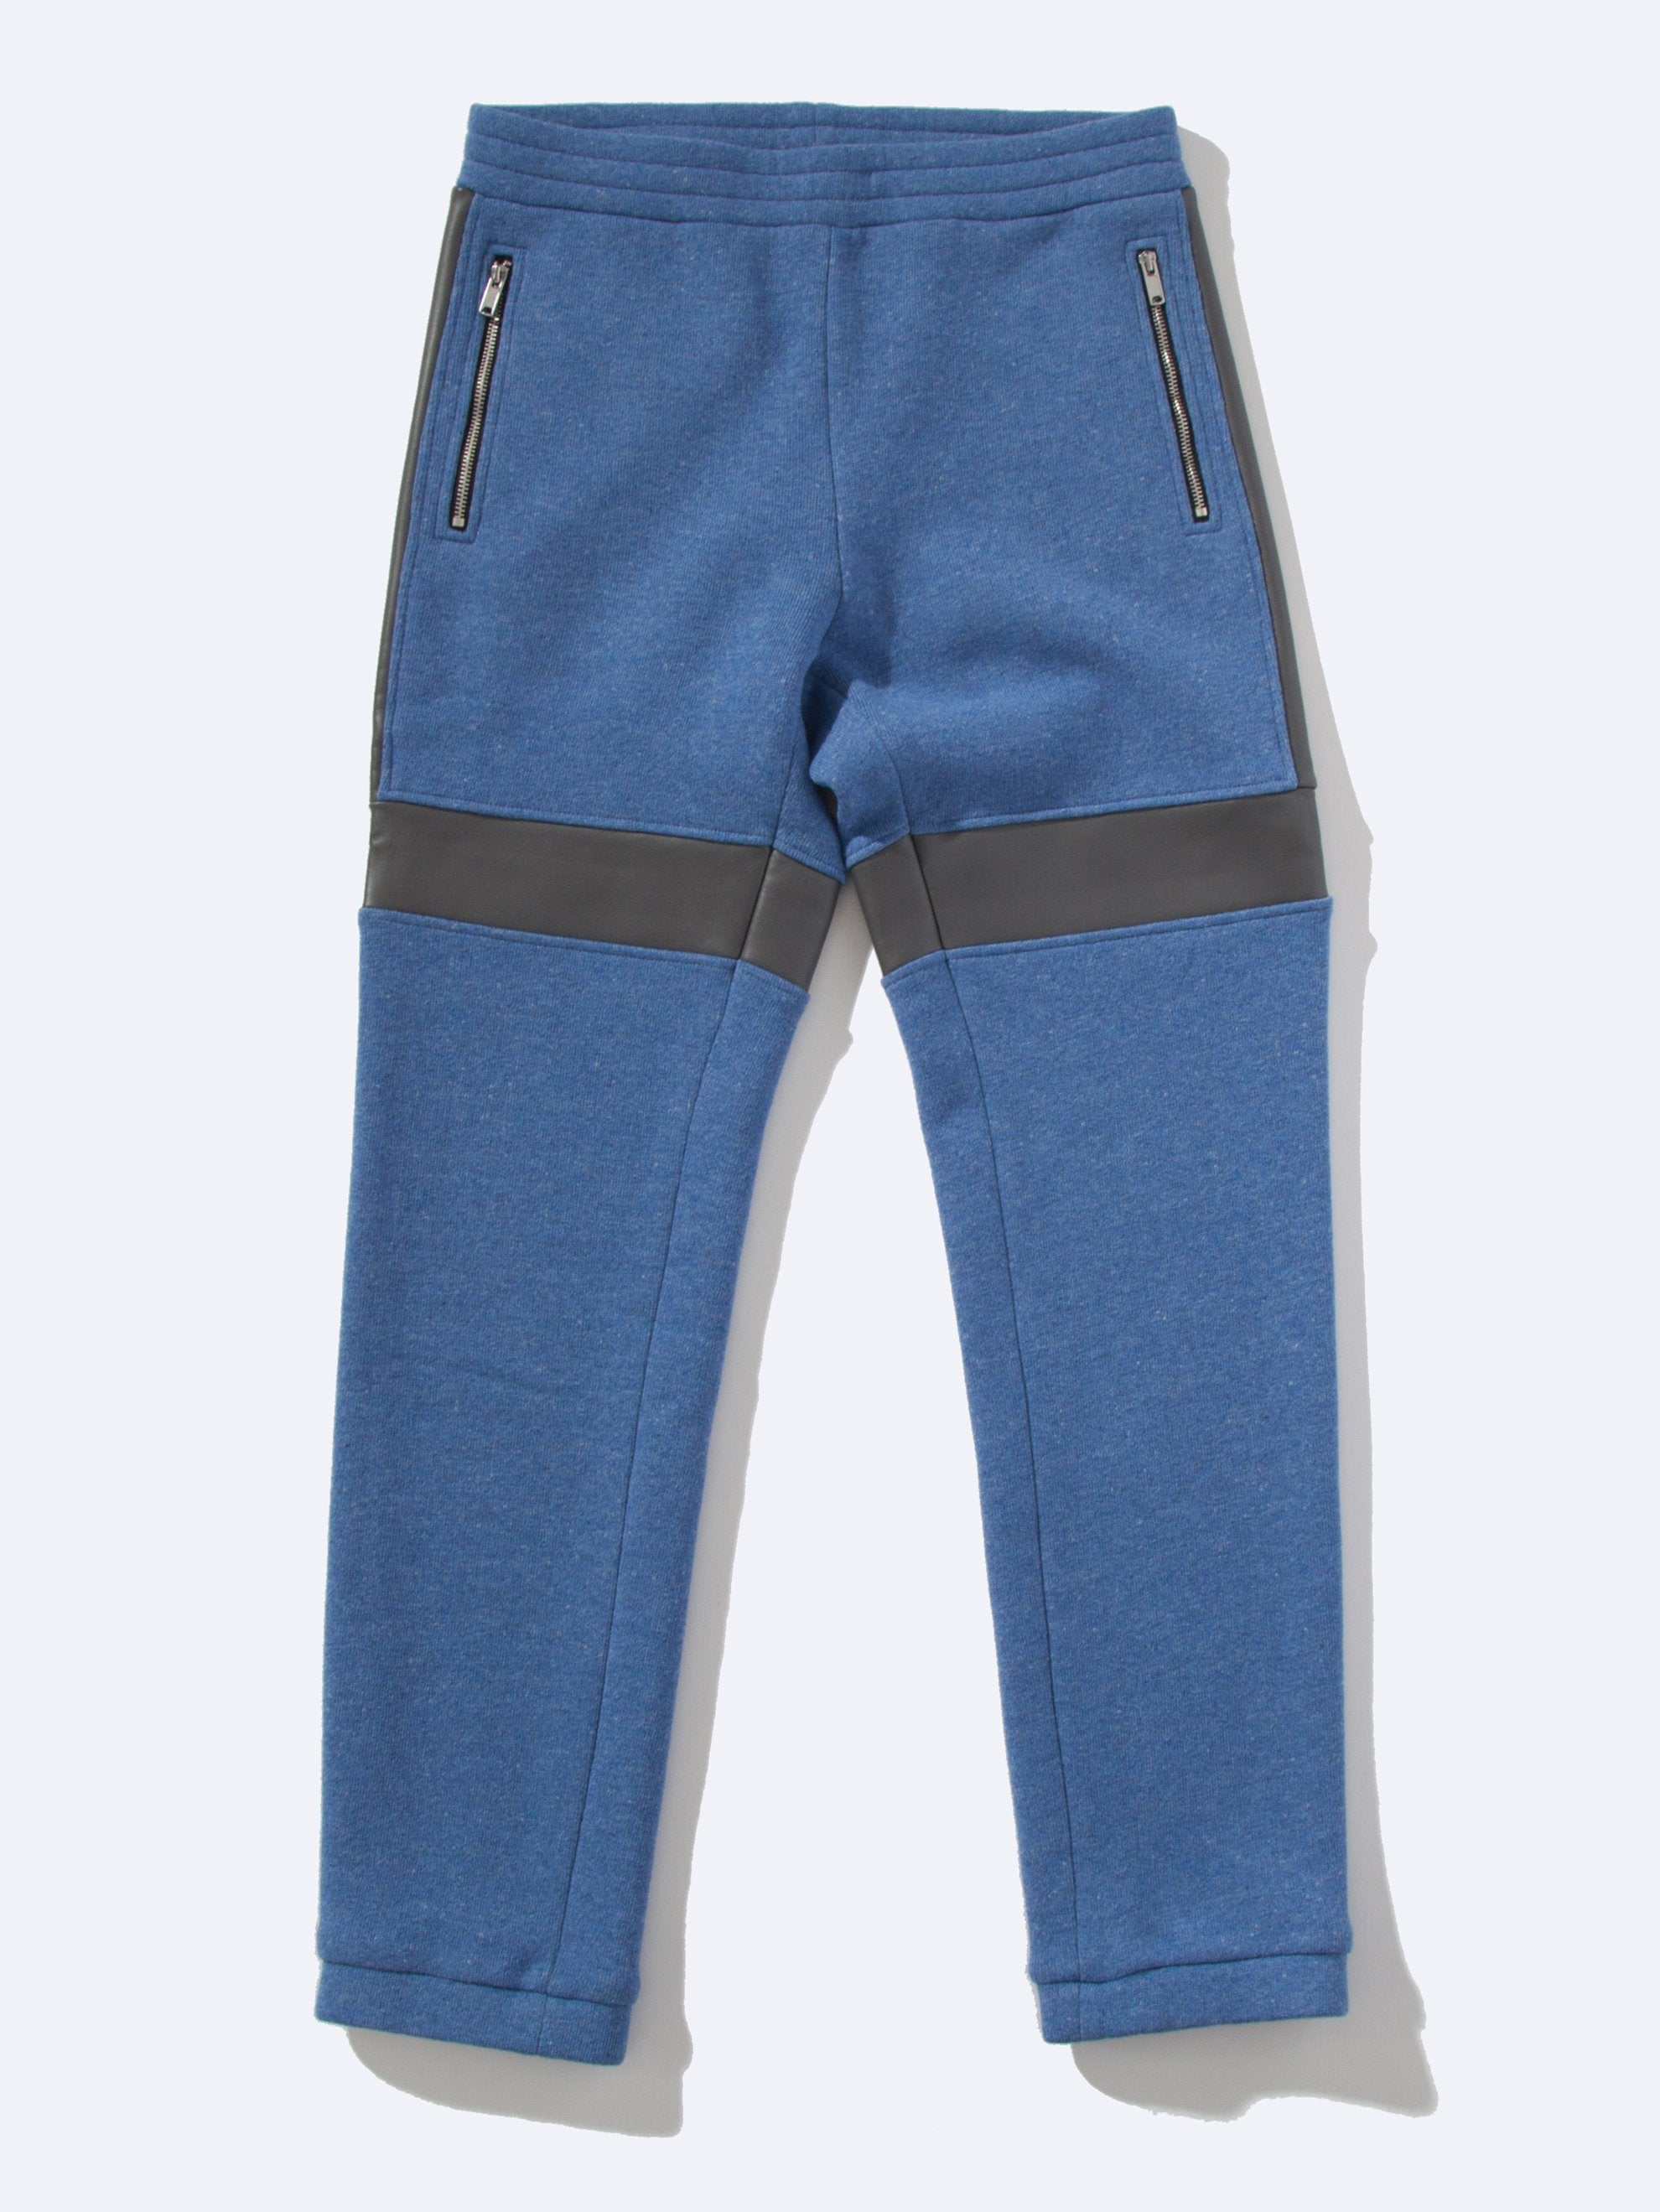 Blue Wool Pant (Fake Leather) 1